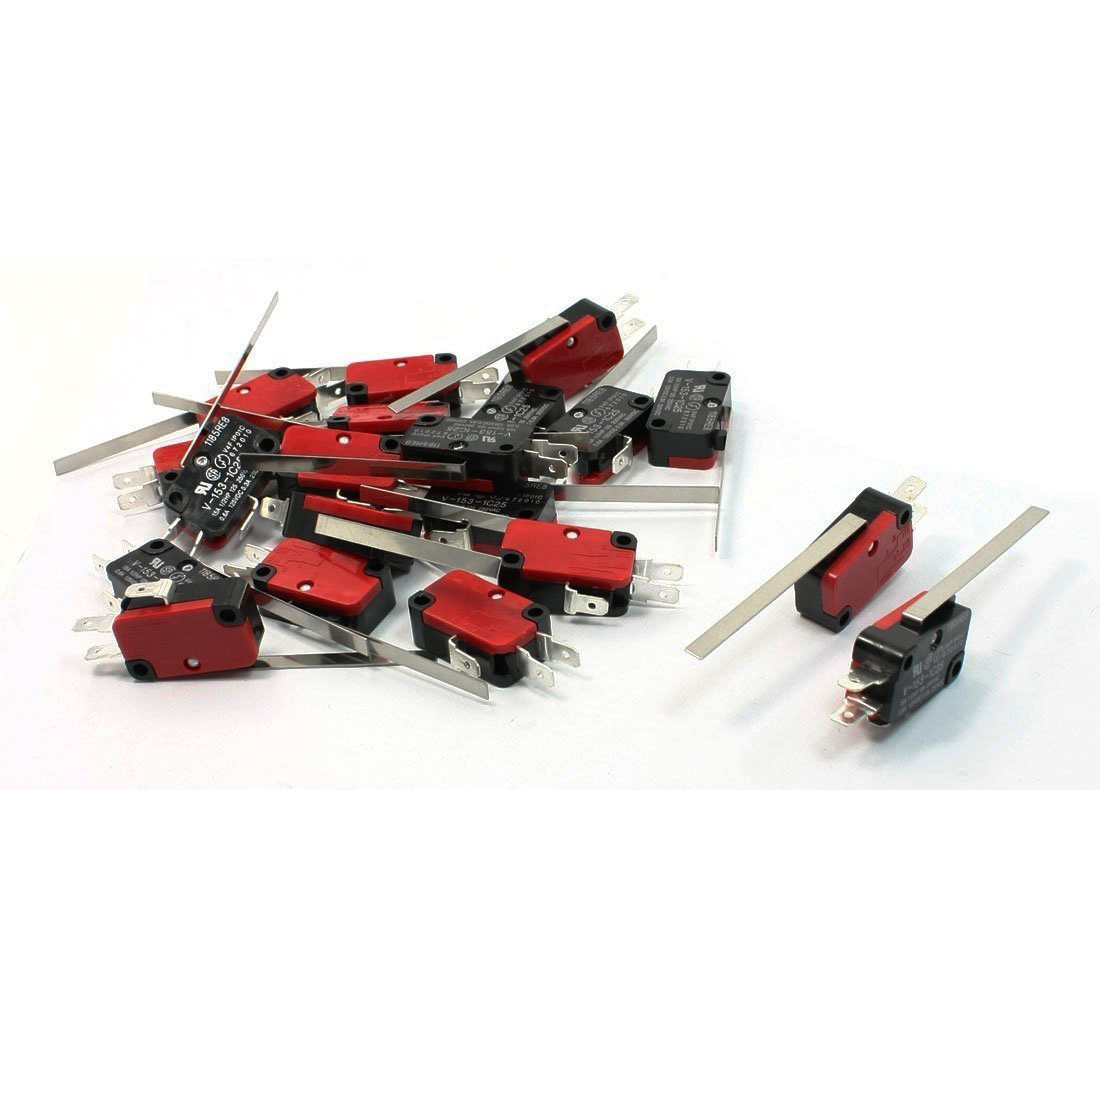 20PCS SPDT 3 Pins Long Straight Hinge Lever Momentary V-153-1C25 Micro Switch Red+Black 100pcs v 152 1c25 straight hinge lever ac dc micro switch